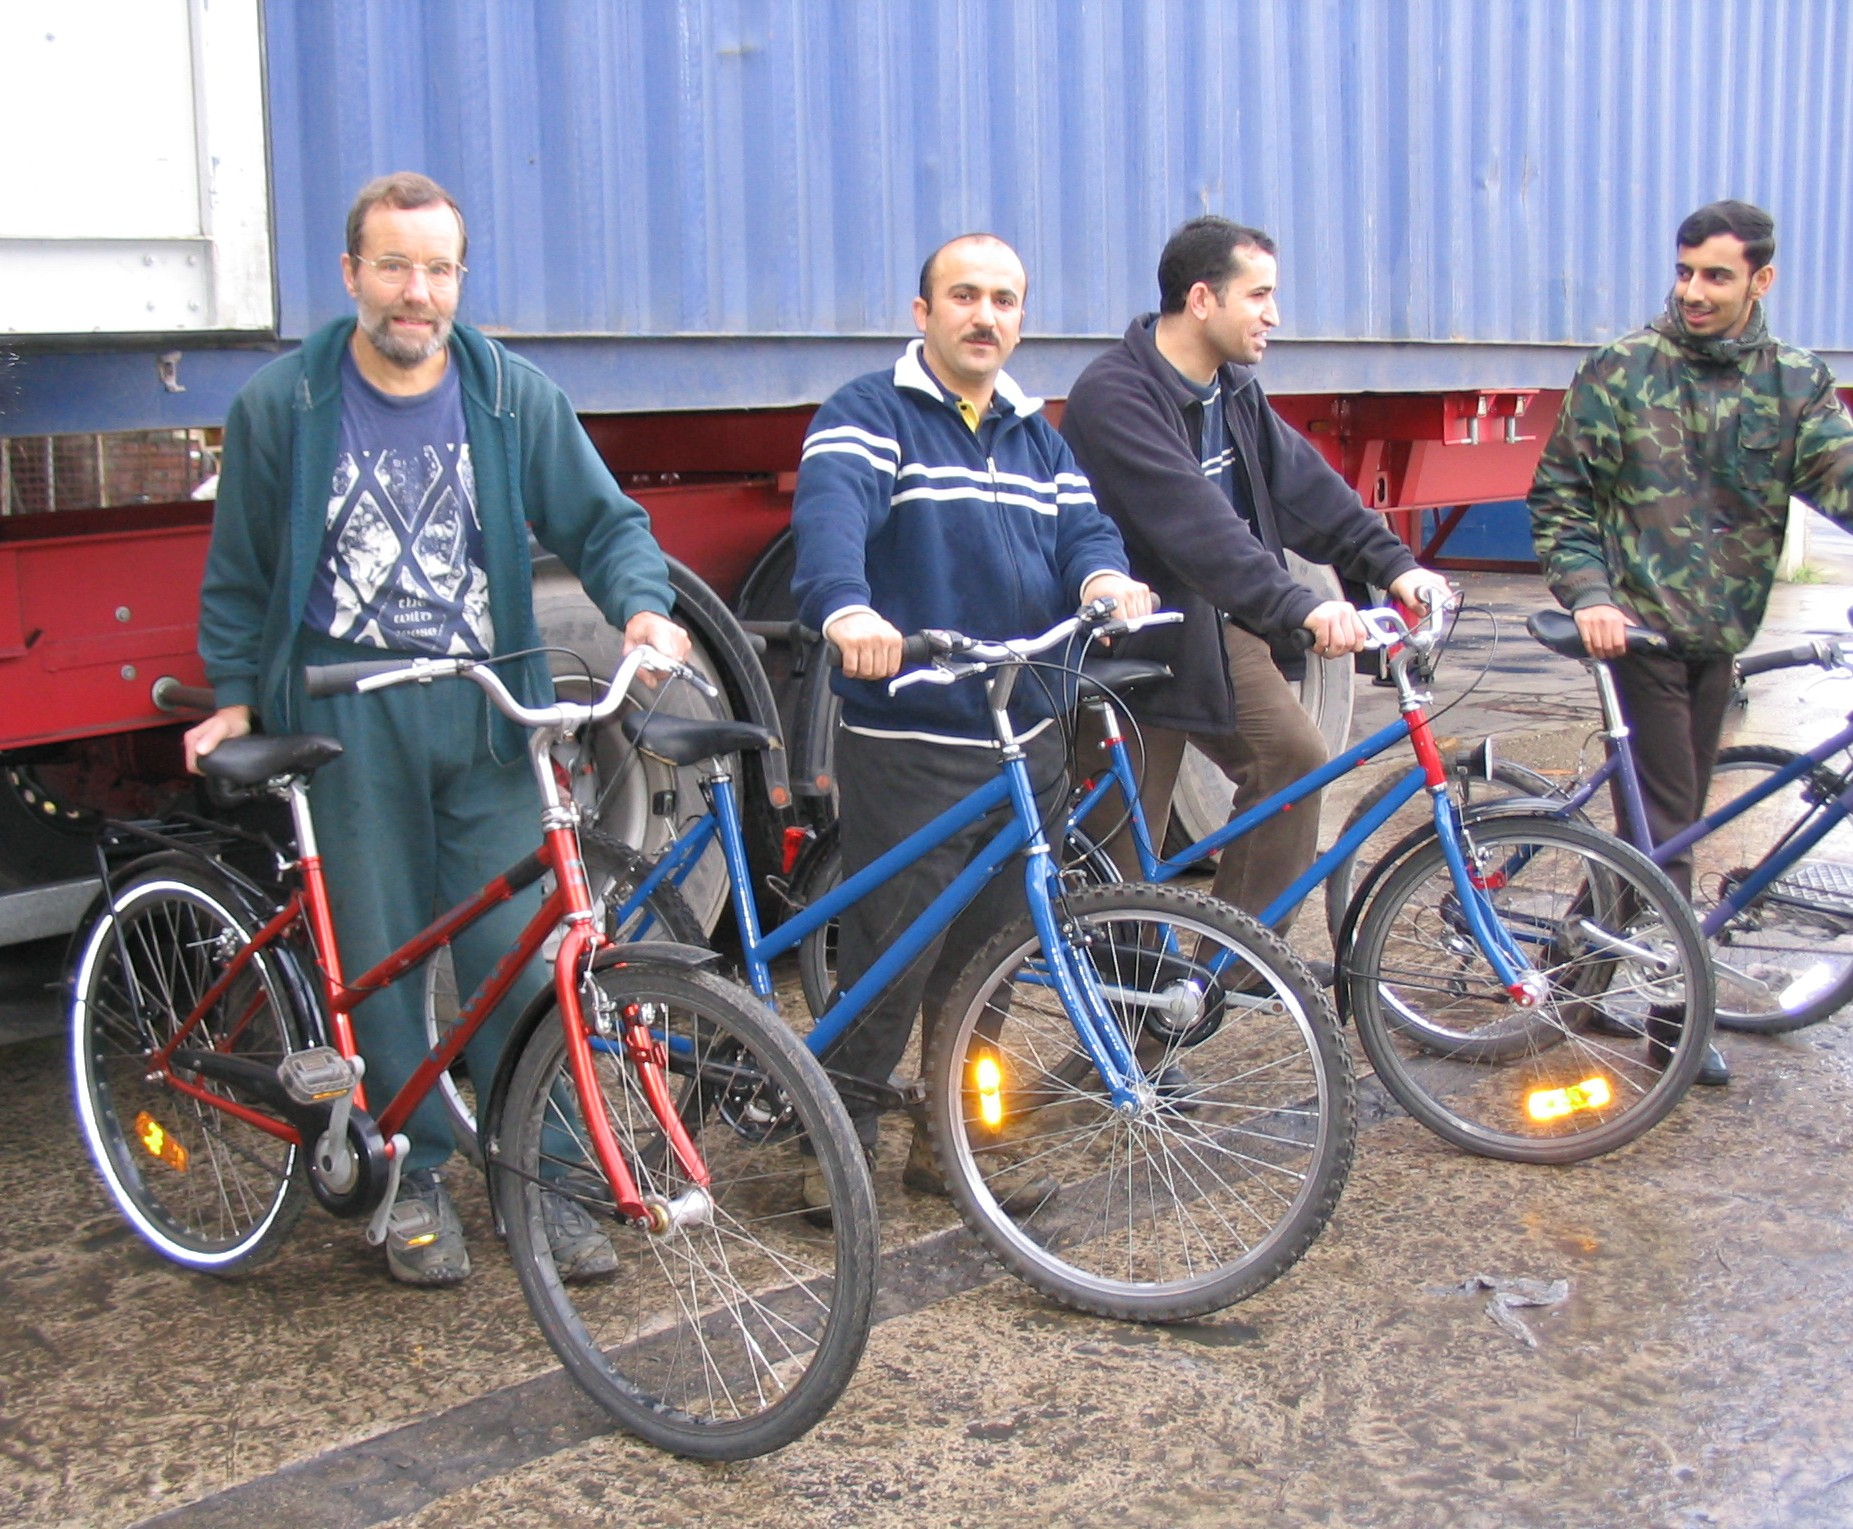 Refurbished bikes ready for donation to Iraq